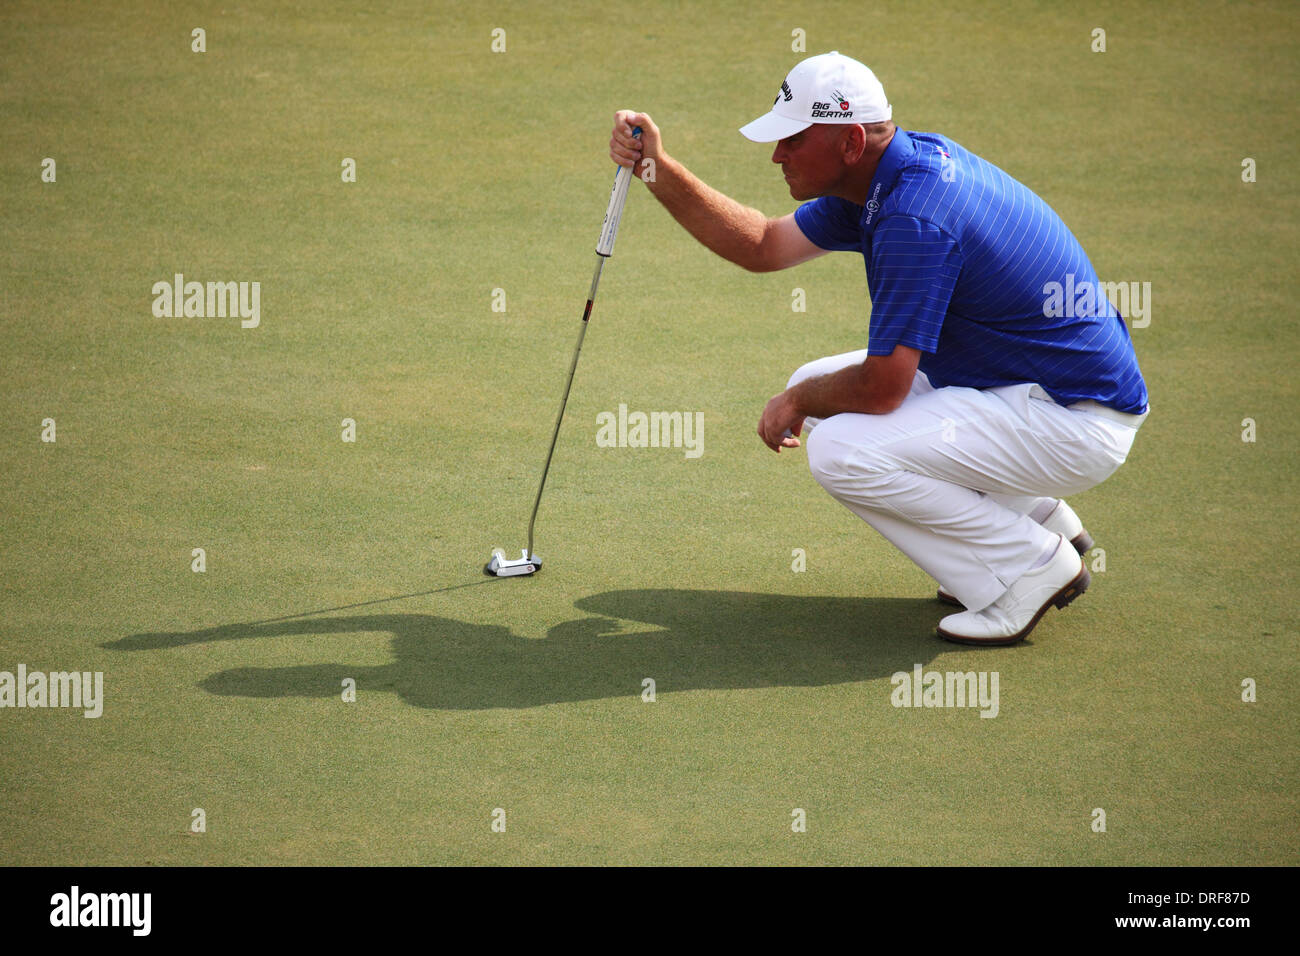 Thomas Bjørn playing in the 2014 Abu Dhabi HSBC Golf Championship. The championship is a PGA European Tour event. - Stock Image